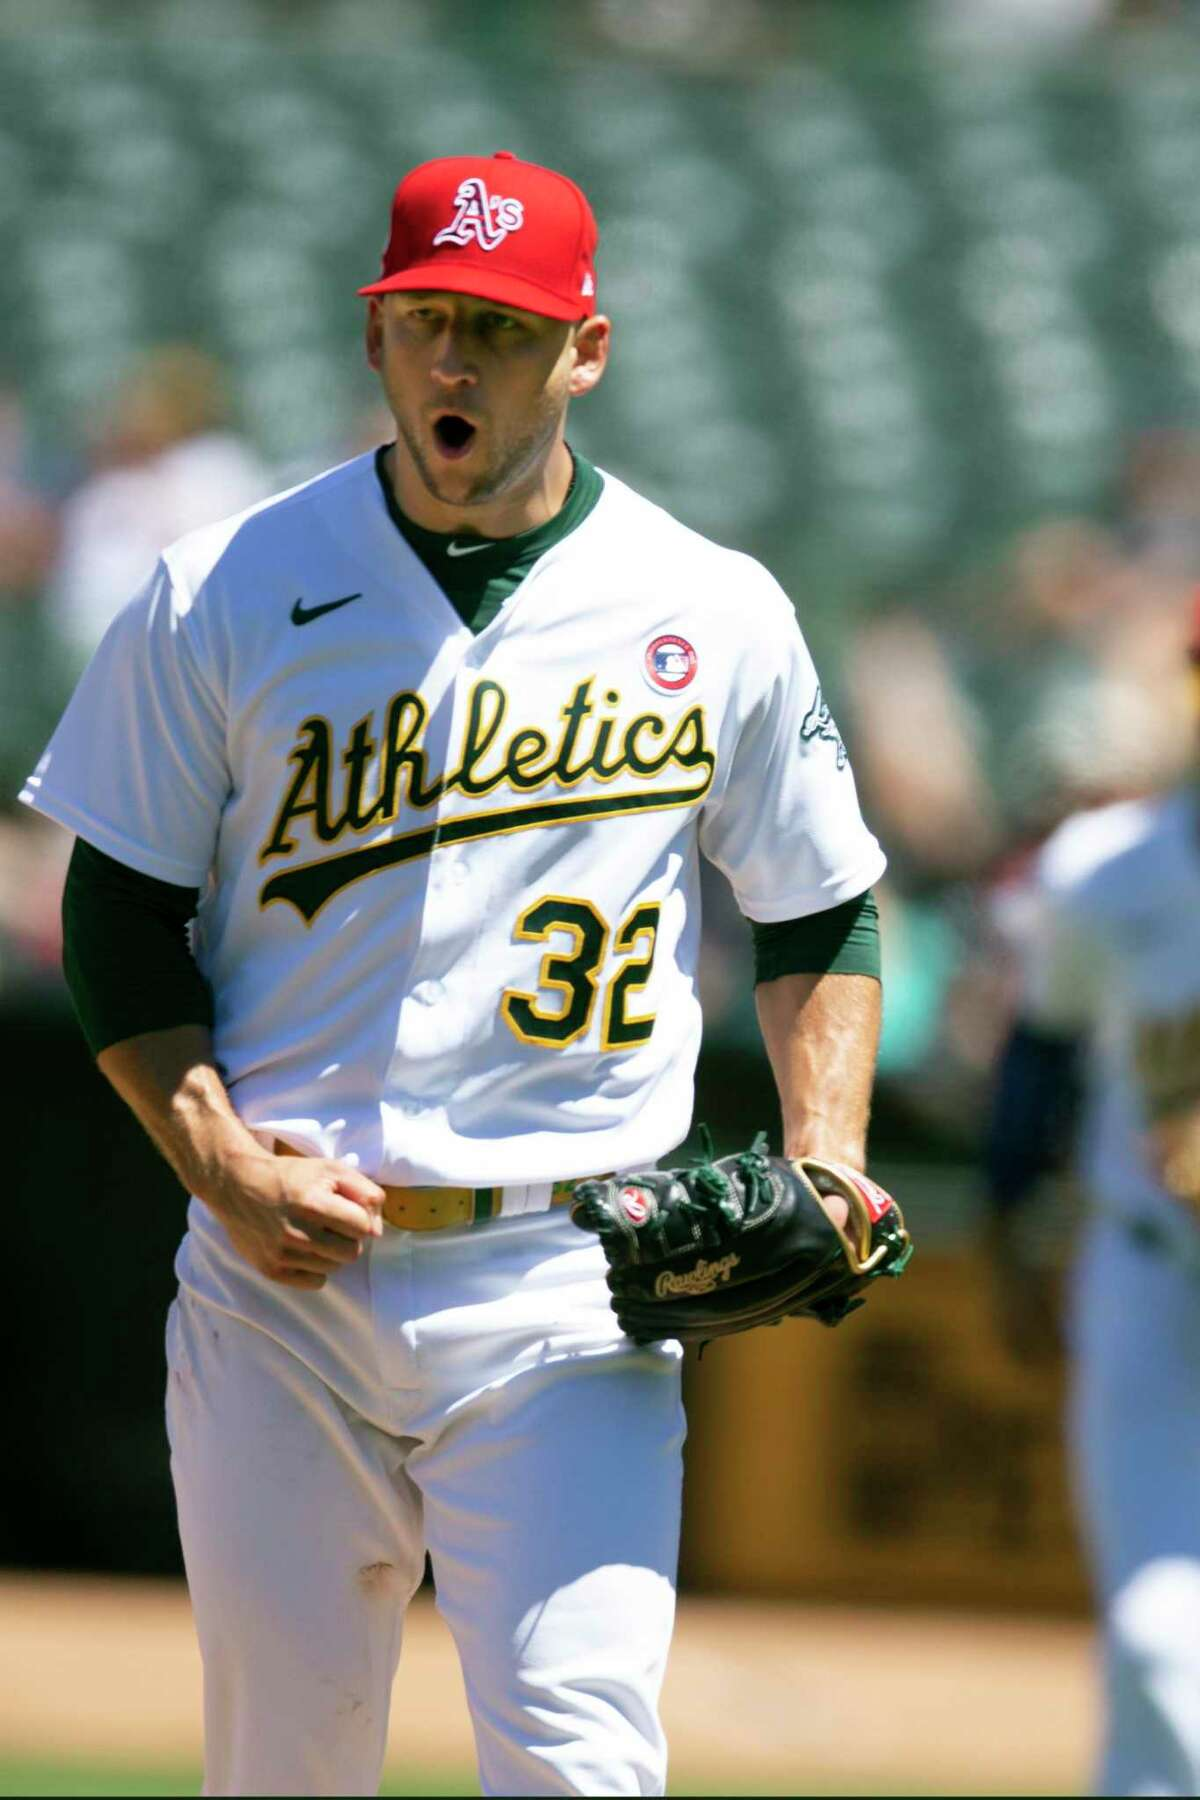 Oakland Athletics starting pitcher James Kaprielian (32) reacts after striking out Boston Red Sox's Michael Chavis to end the top half of the seventh inning of a baseball game, Sunday, July 4, 2021, in Oakland, Calif. (AP Photo/D. Ross Cameron)